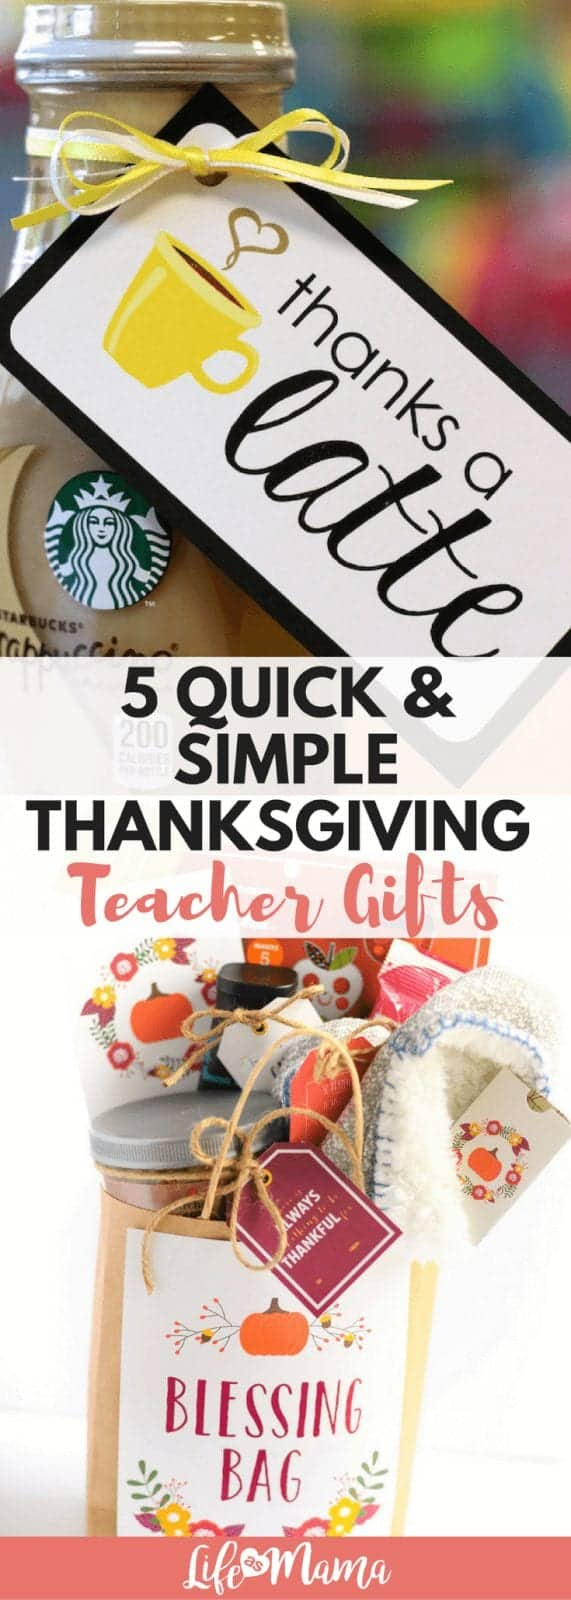 Thanksgiving teacher gifts